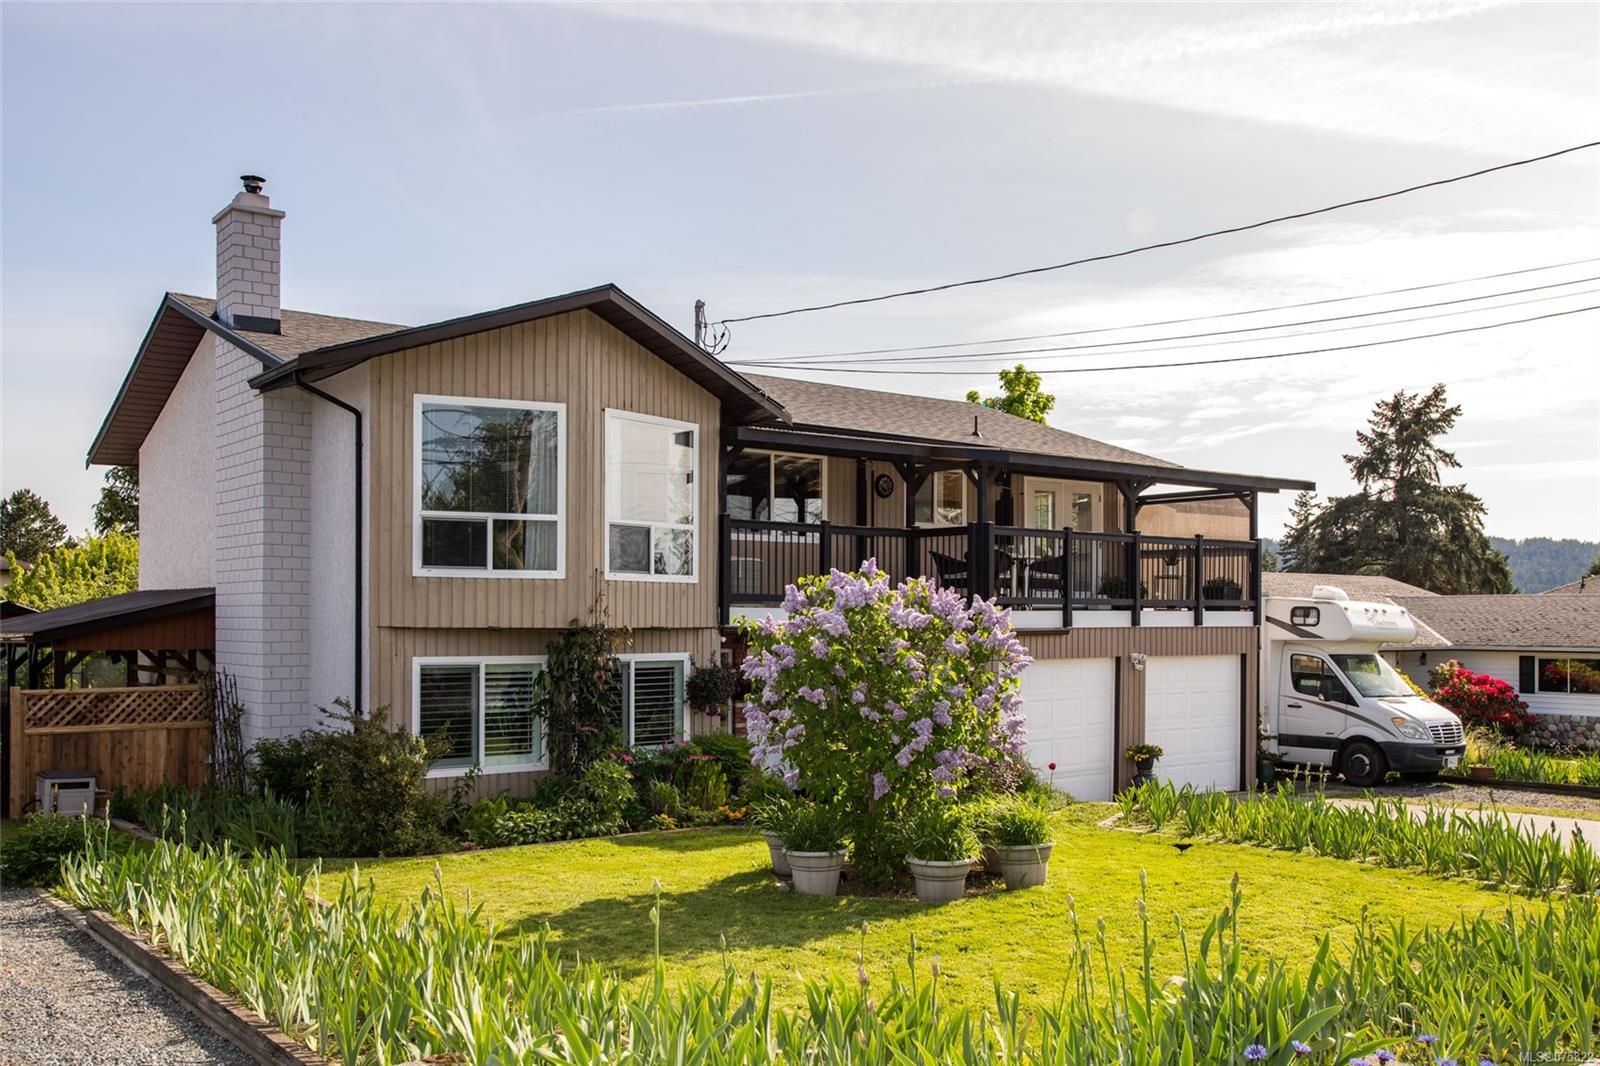 Main Photo: 1073 Verdier Ave in : CS Brentwood Bay House for sale (Central Saanich)  : MLS®# 875822